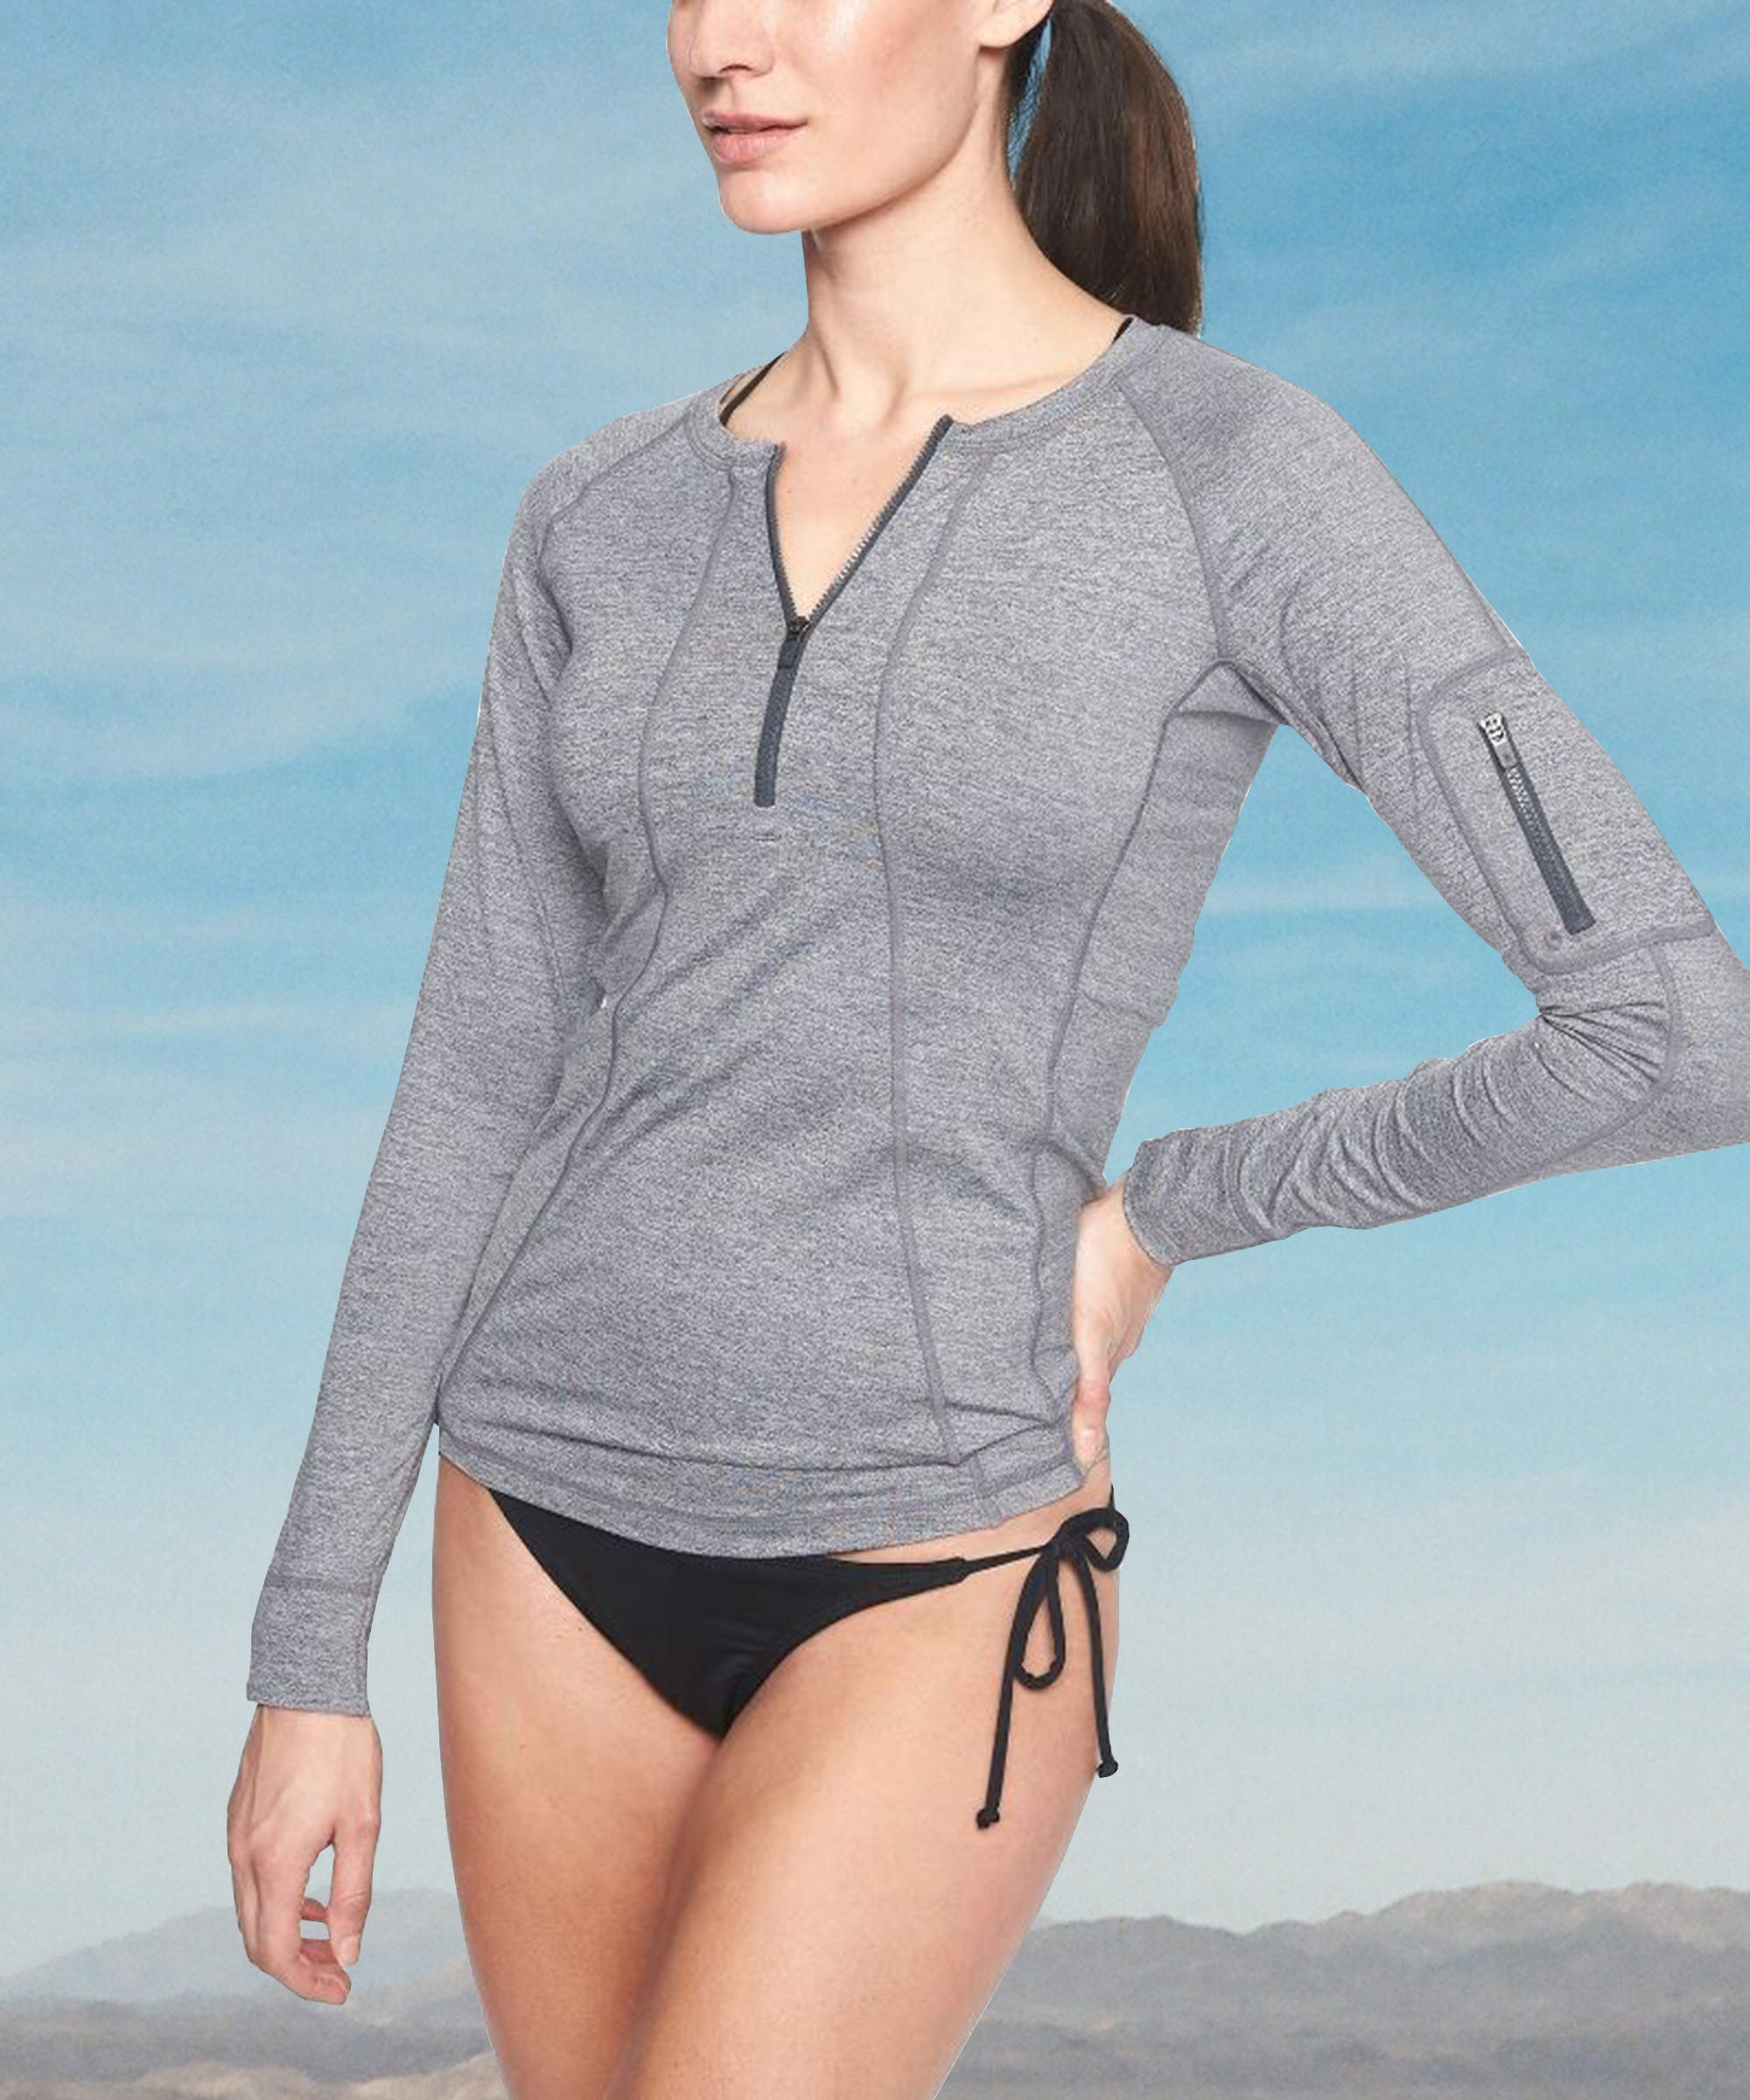 11 Sun-Protective Workout Clothes That Don't Look Dorky